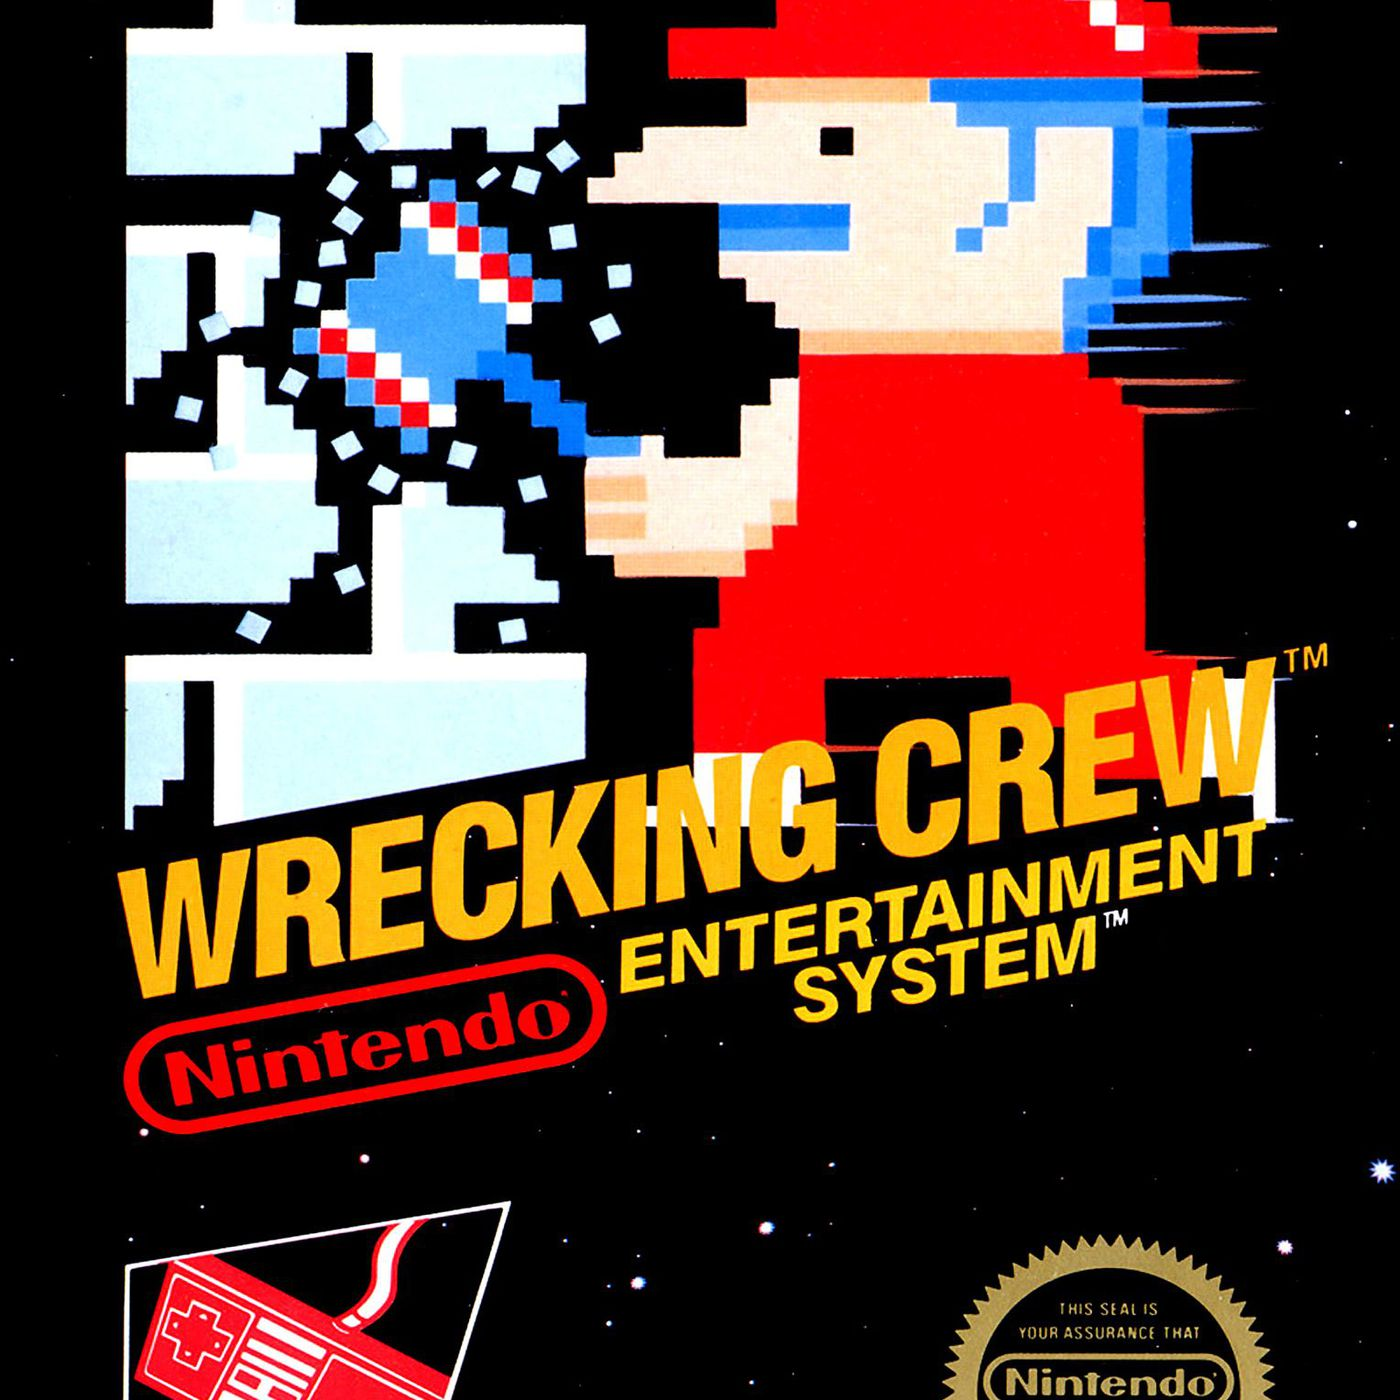 Donkey Kong 3, Wrecking Crew join NES library for Switch